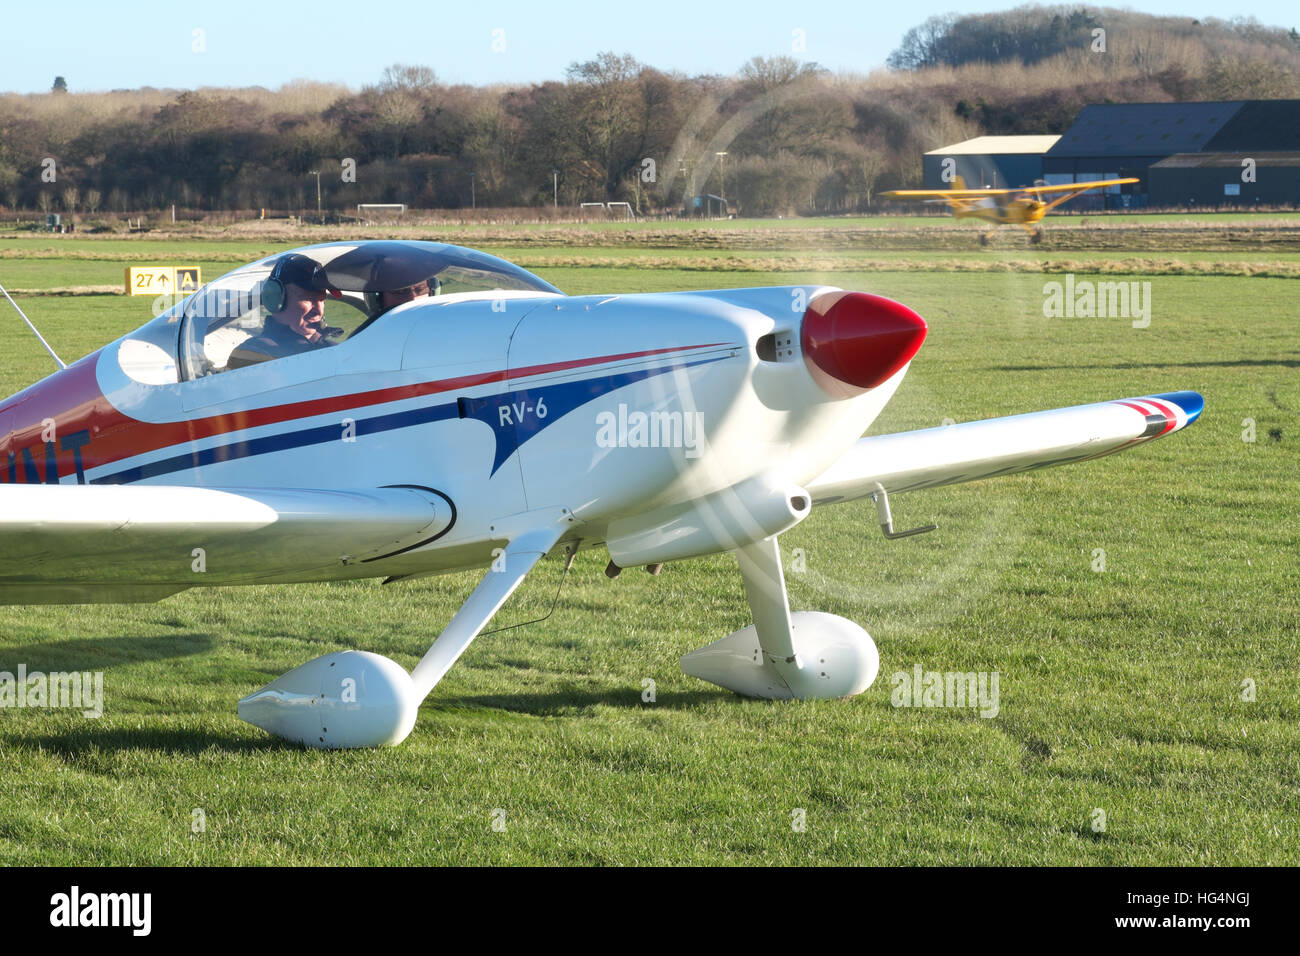 Vans RV-6 kit built light aircraft taxying out for departure at Shobdon airfield in the UK - Stock Image